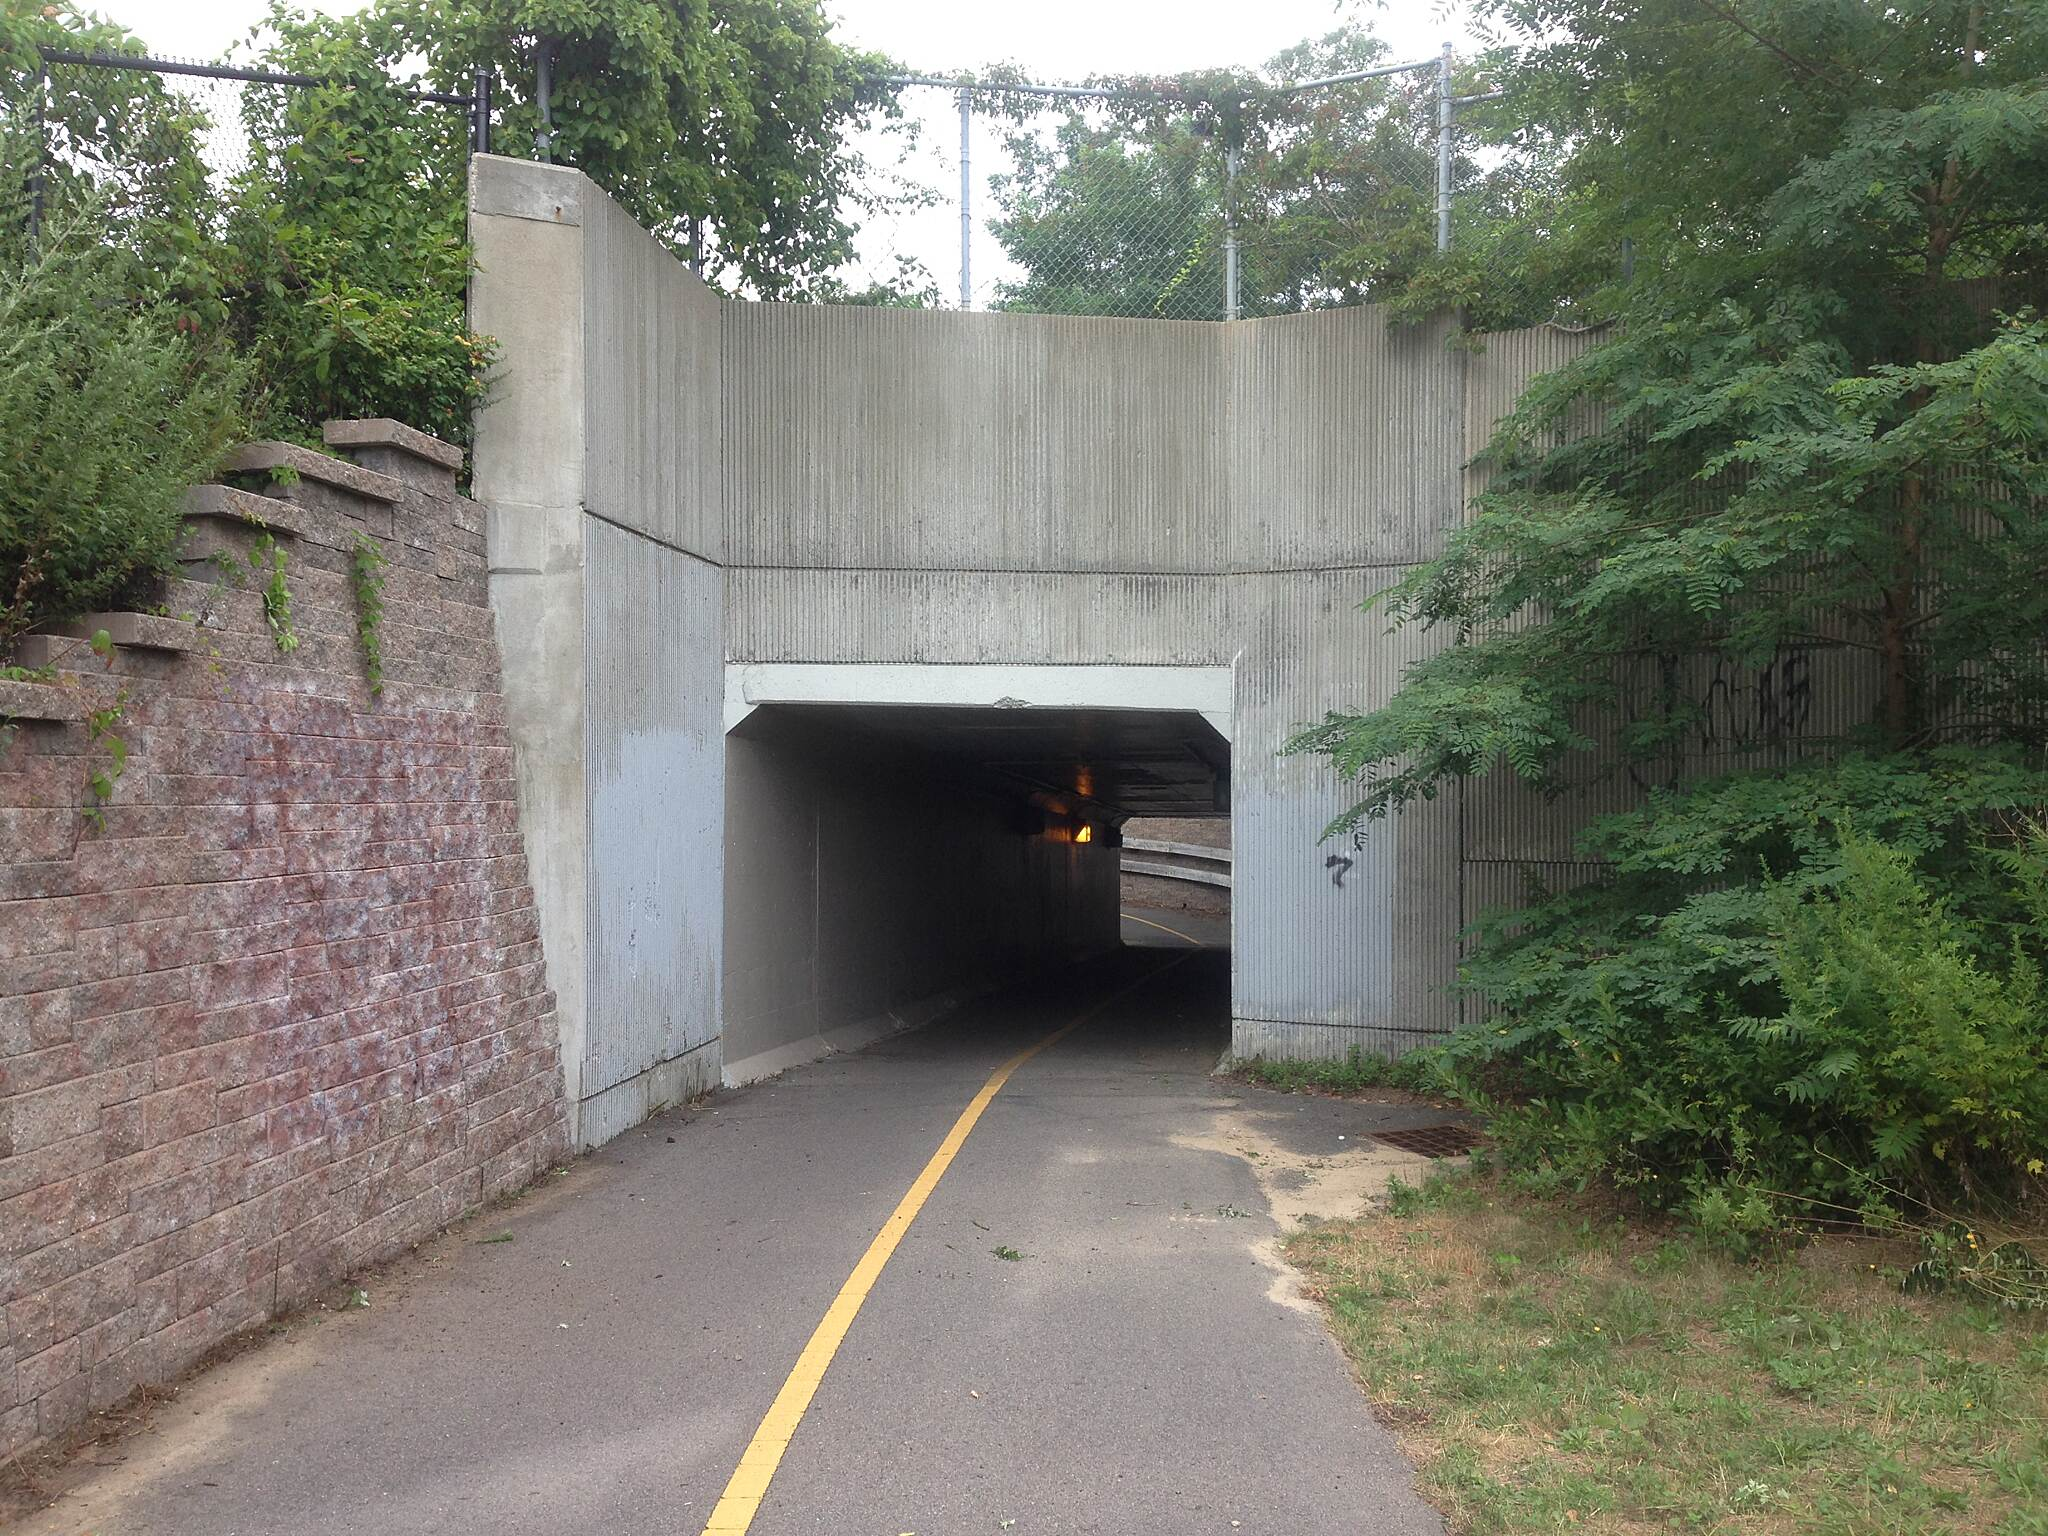 Cape Cod Rail Trail Eastham, MA Tunnel on the Eastham portion of the trail.